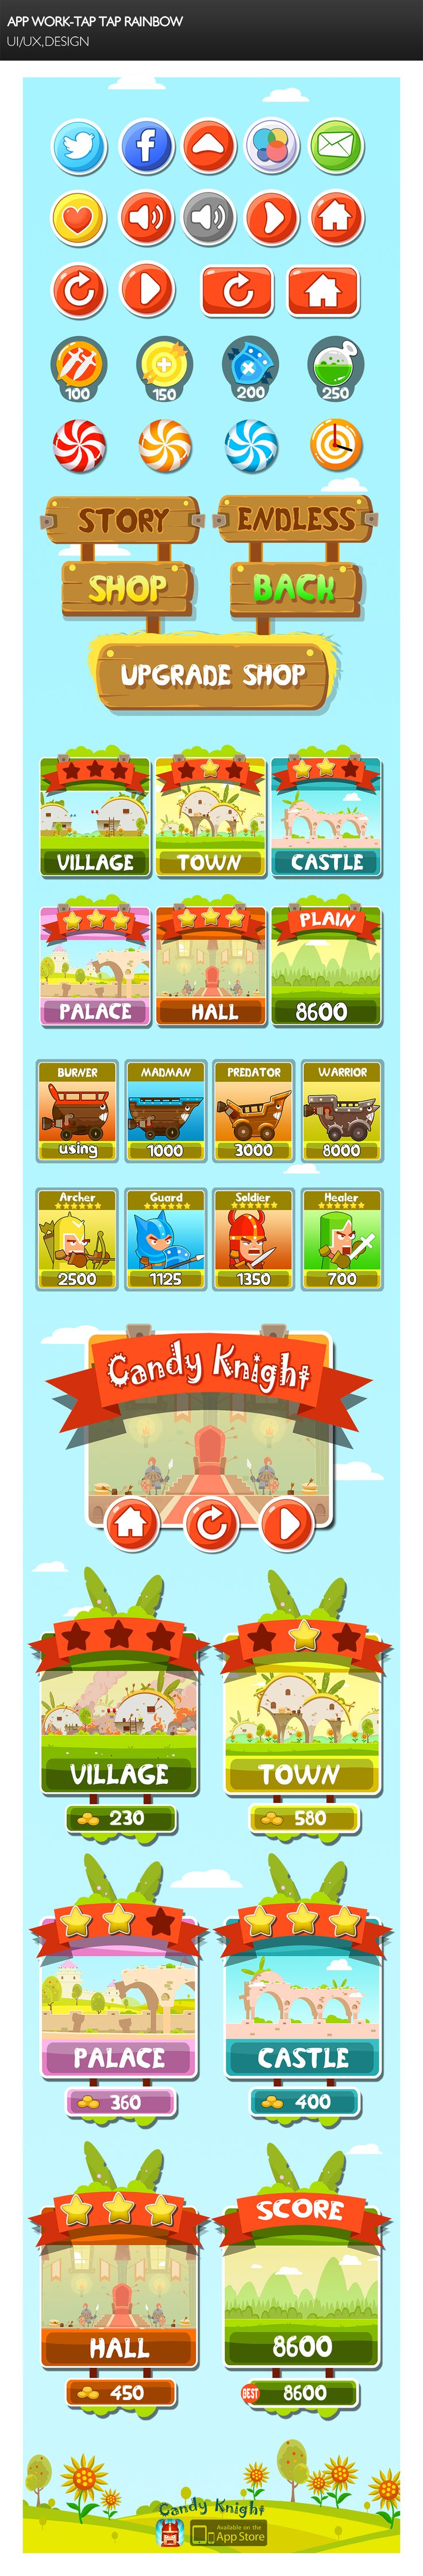 《Candy Knight 》IOS app store: https://itunes.apple.com/us/app/candy-knight-hd/id908154703?ls=1&mt=8